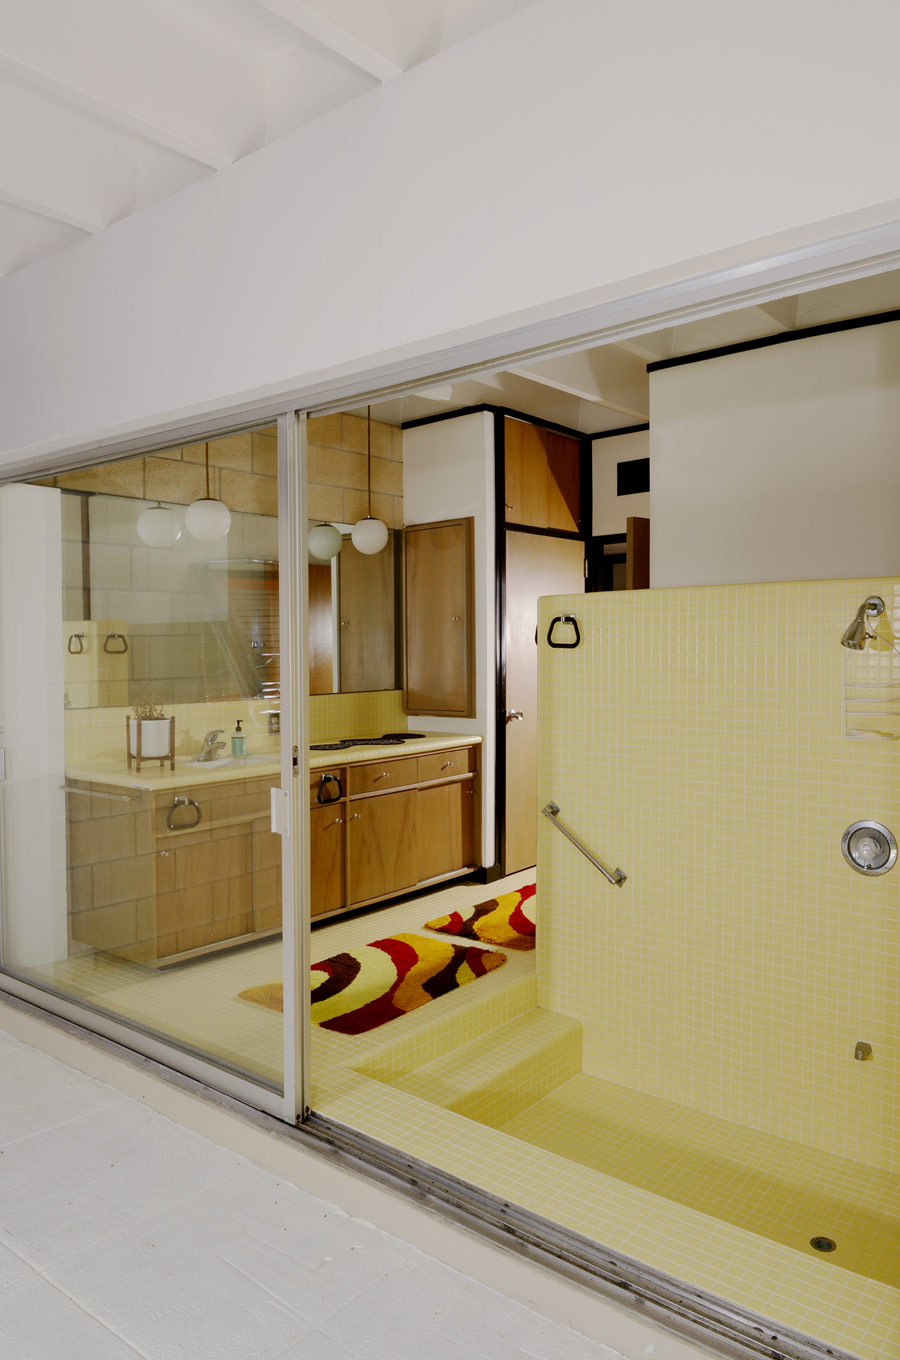 The master bathroom is very eye catchy, with yellow tuiles and brown wooden furniture plus storage items